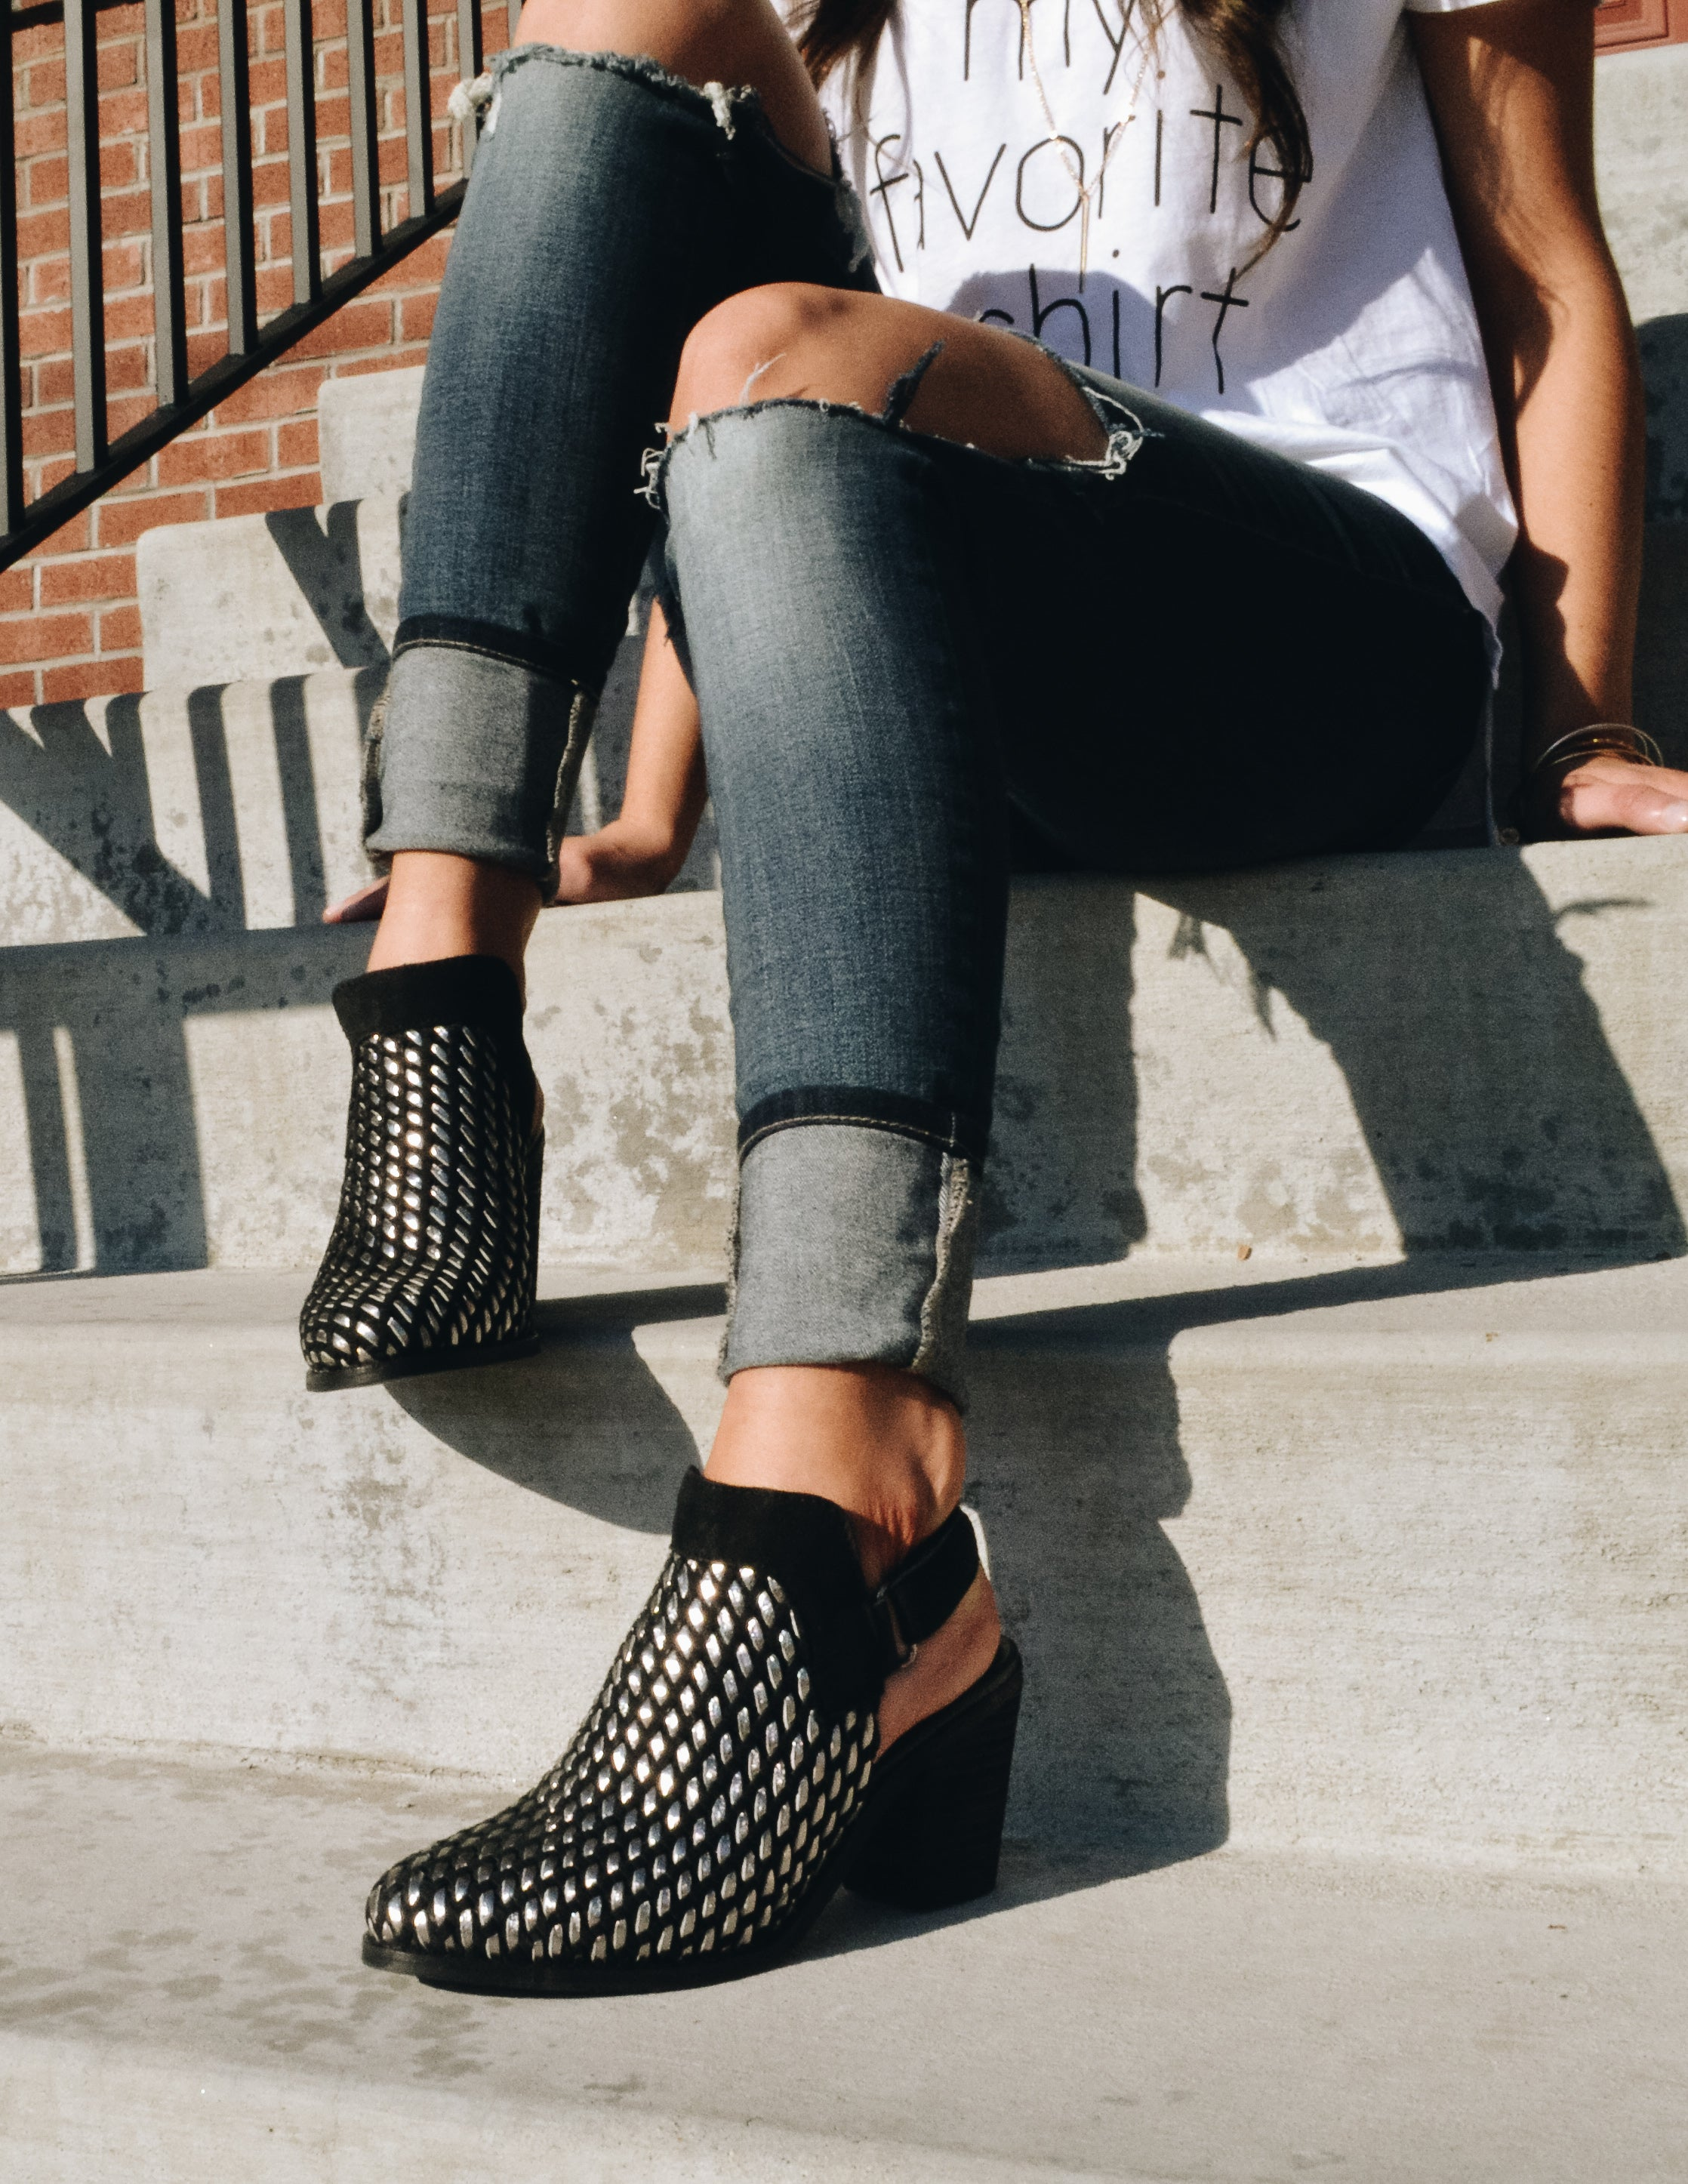 Model sitting on concrete steps wearing denim and black Sandara heel - Elle Bleu Shoe Boutique